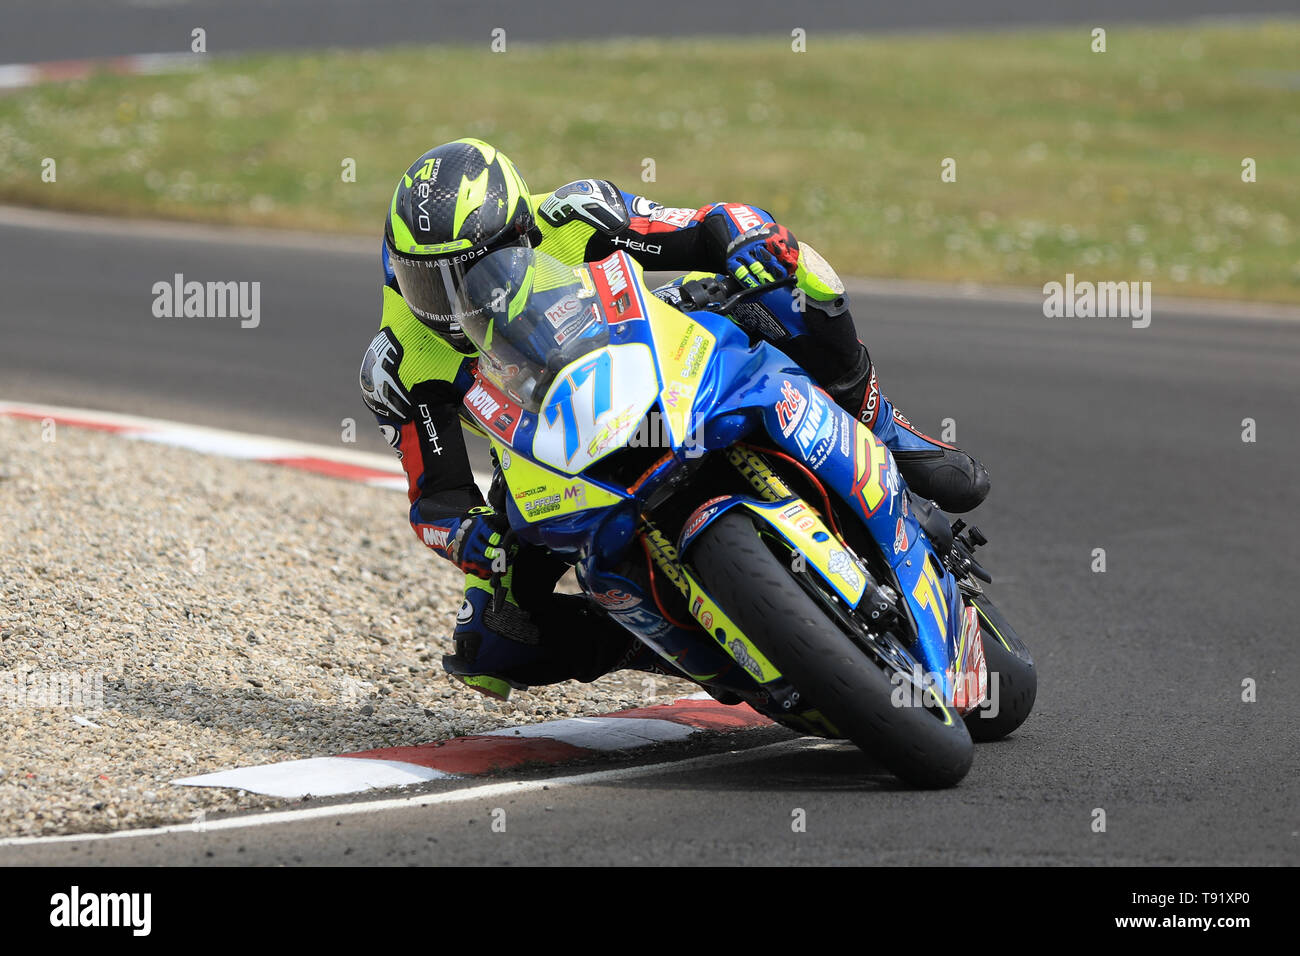 Portrush, Northern Ireland. 16th May, 2019. International North West 200 Motorcycle road racing, Thursday practice and evening racing; Tom Weeden on the Burrows Engineering/RK Racing Yamaha during the SuperSport qualifying session Credit: Action Plus Sports/Alamy Live News - Stock Image